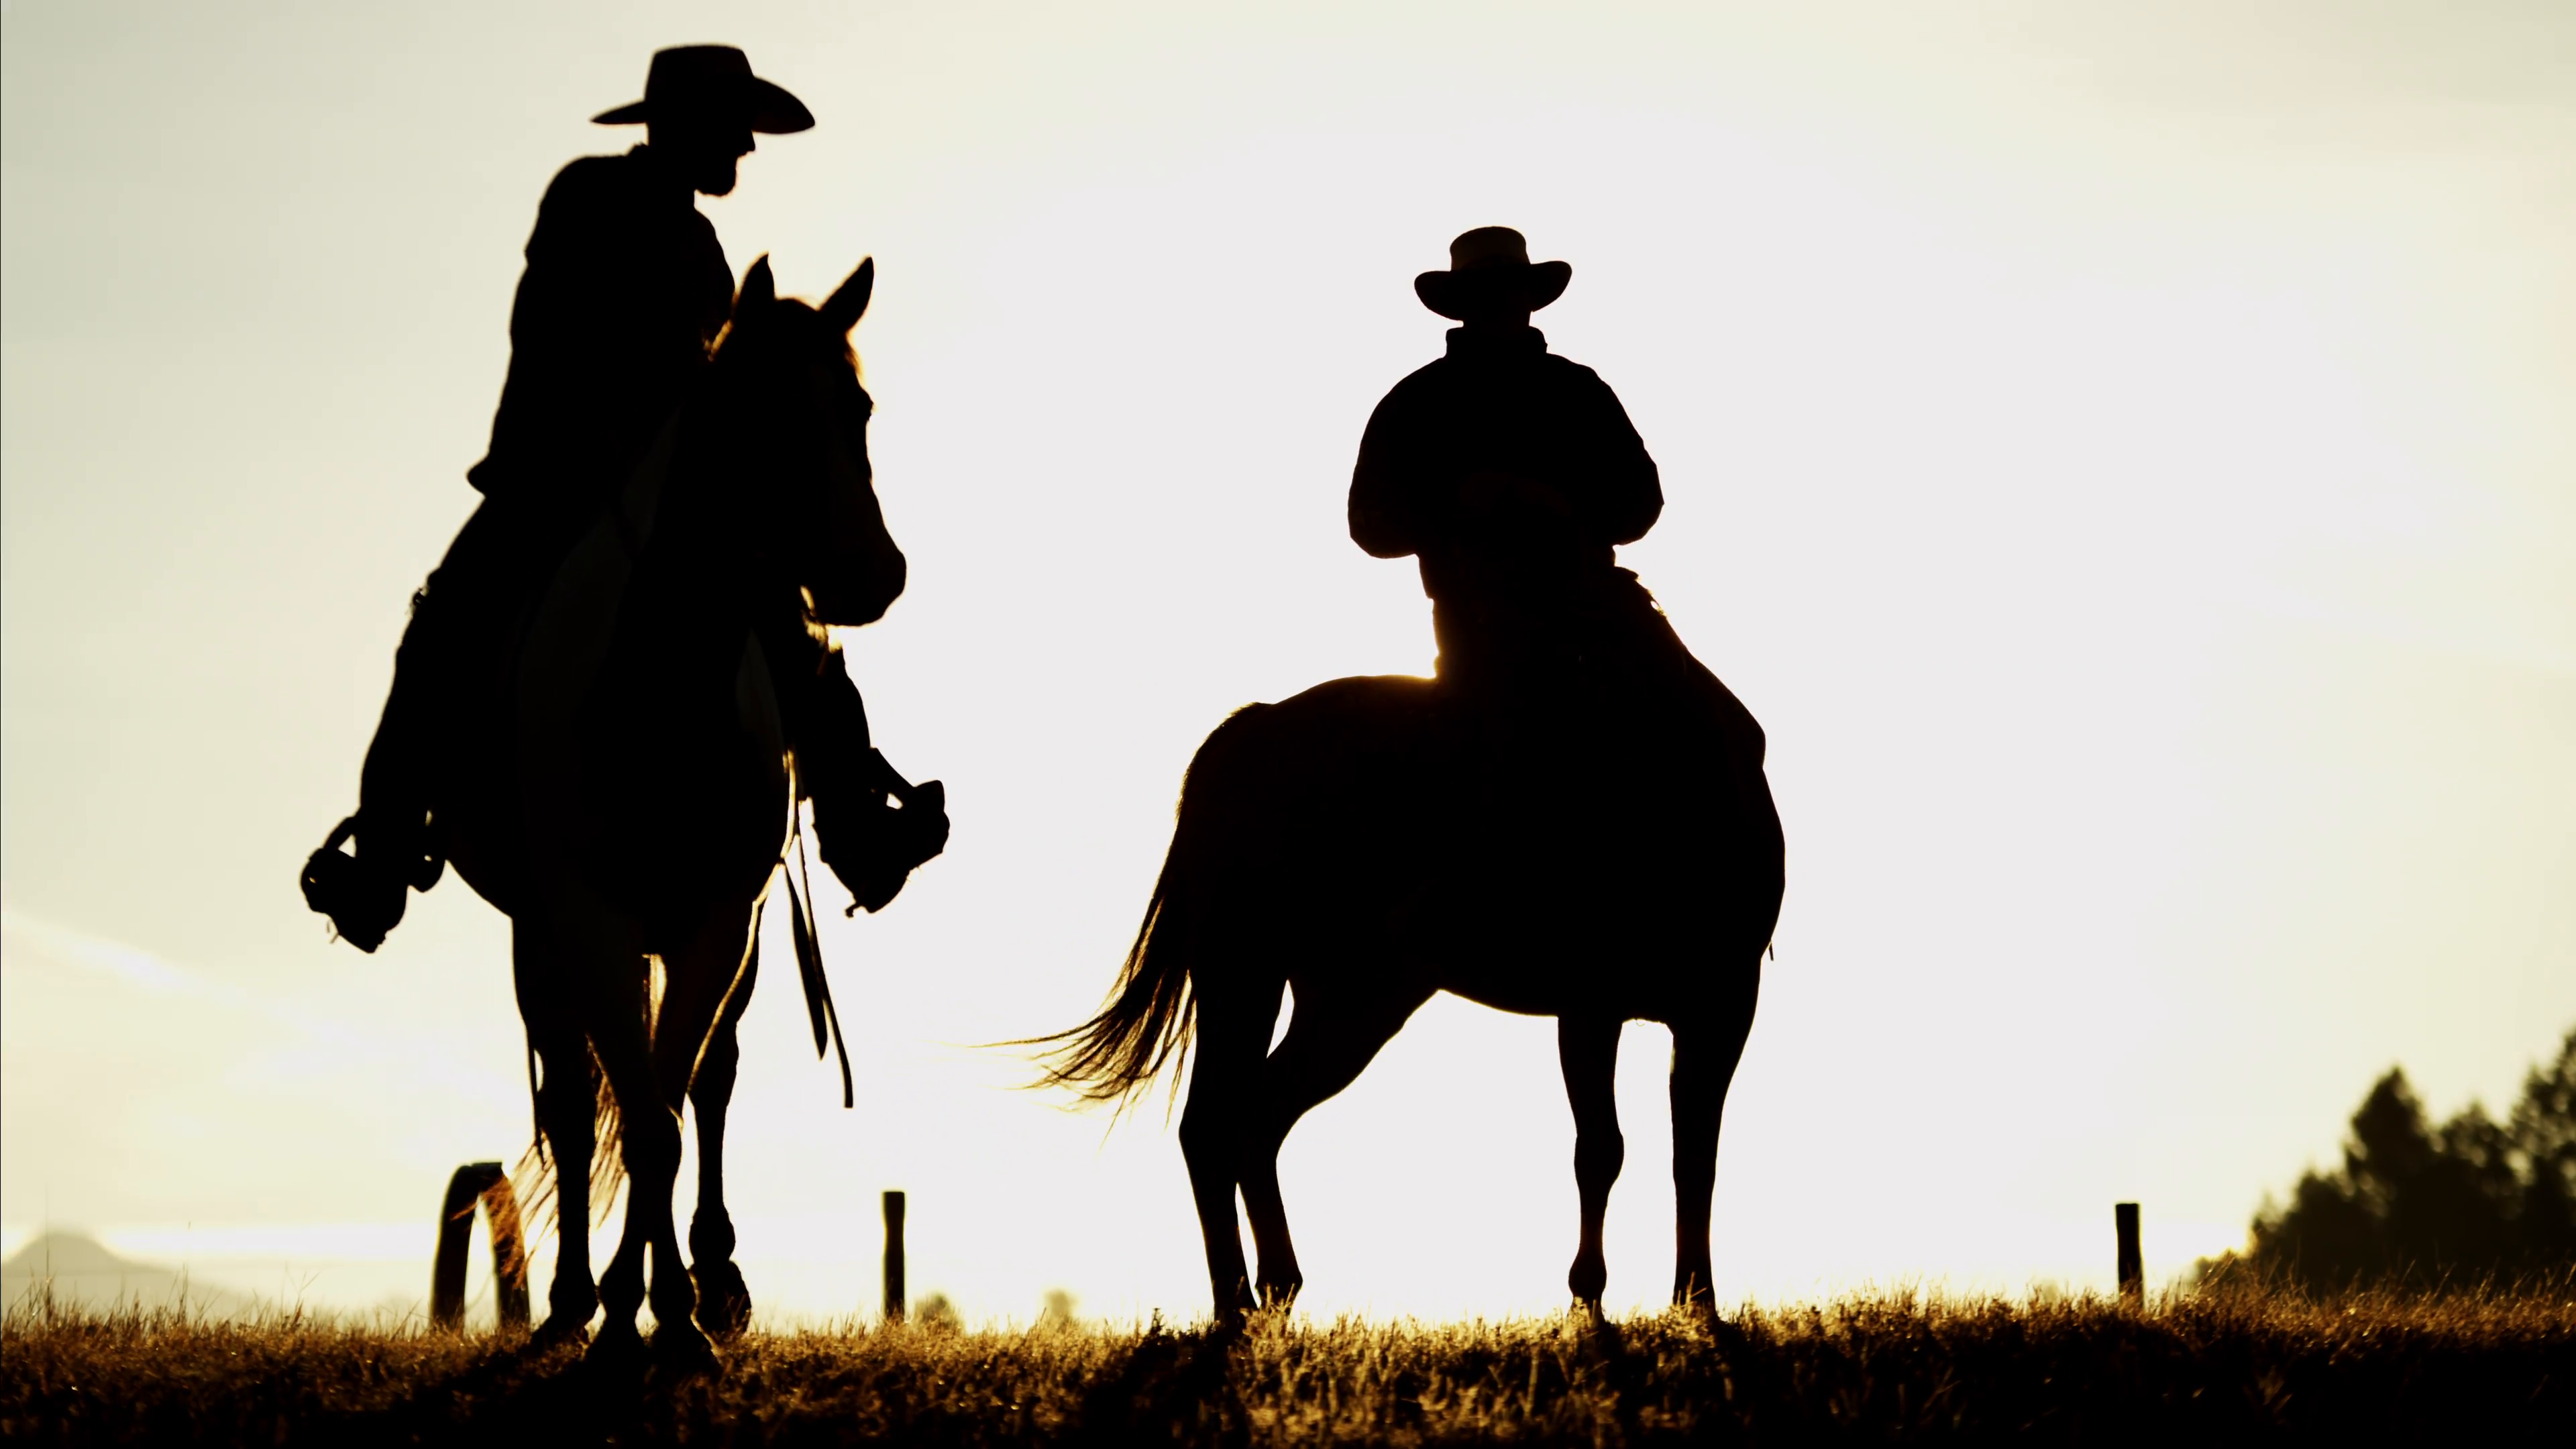 3840x2160 Silhouette Of Cowboy Riders In Forest Wilderness Area